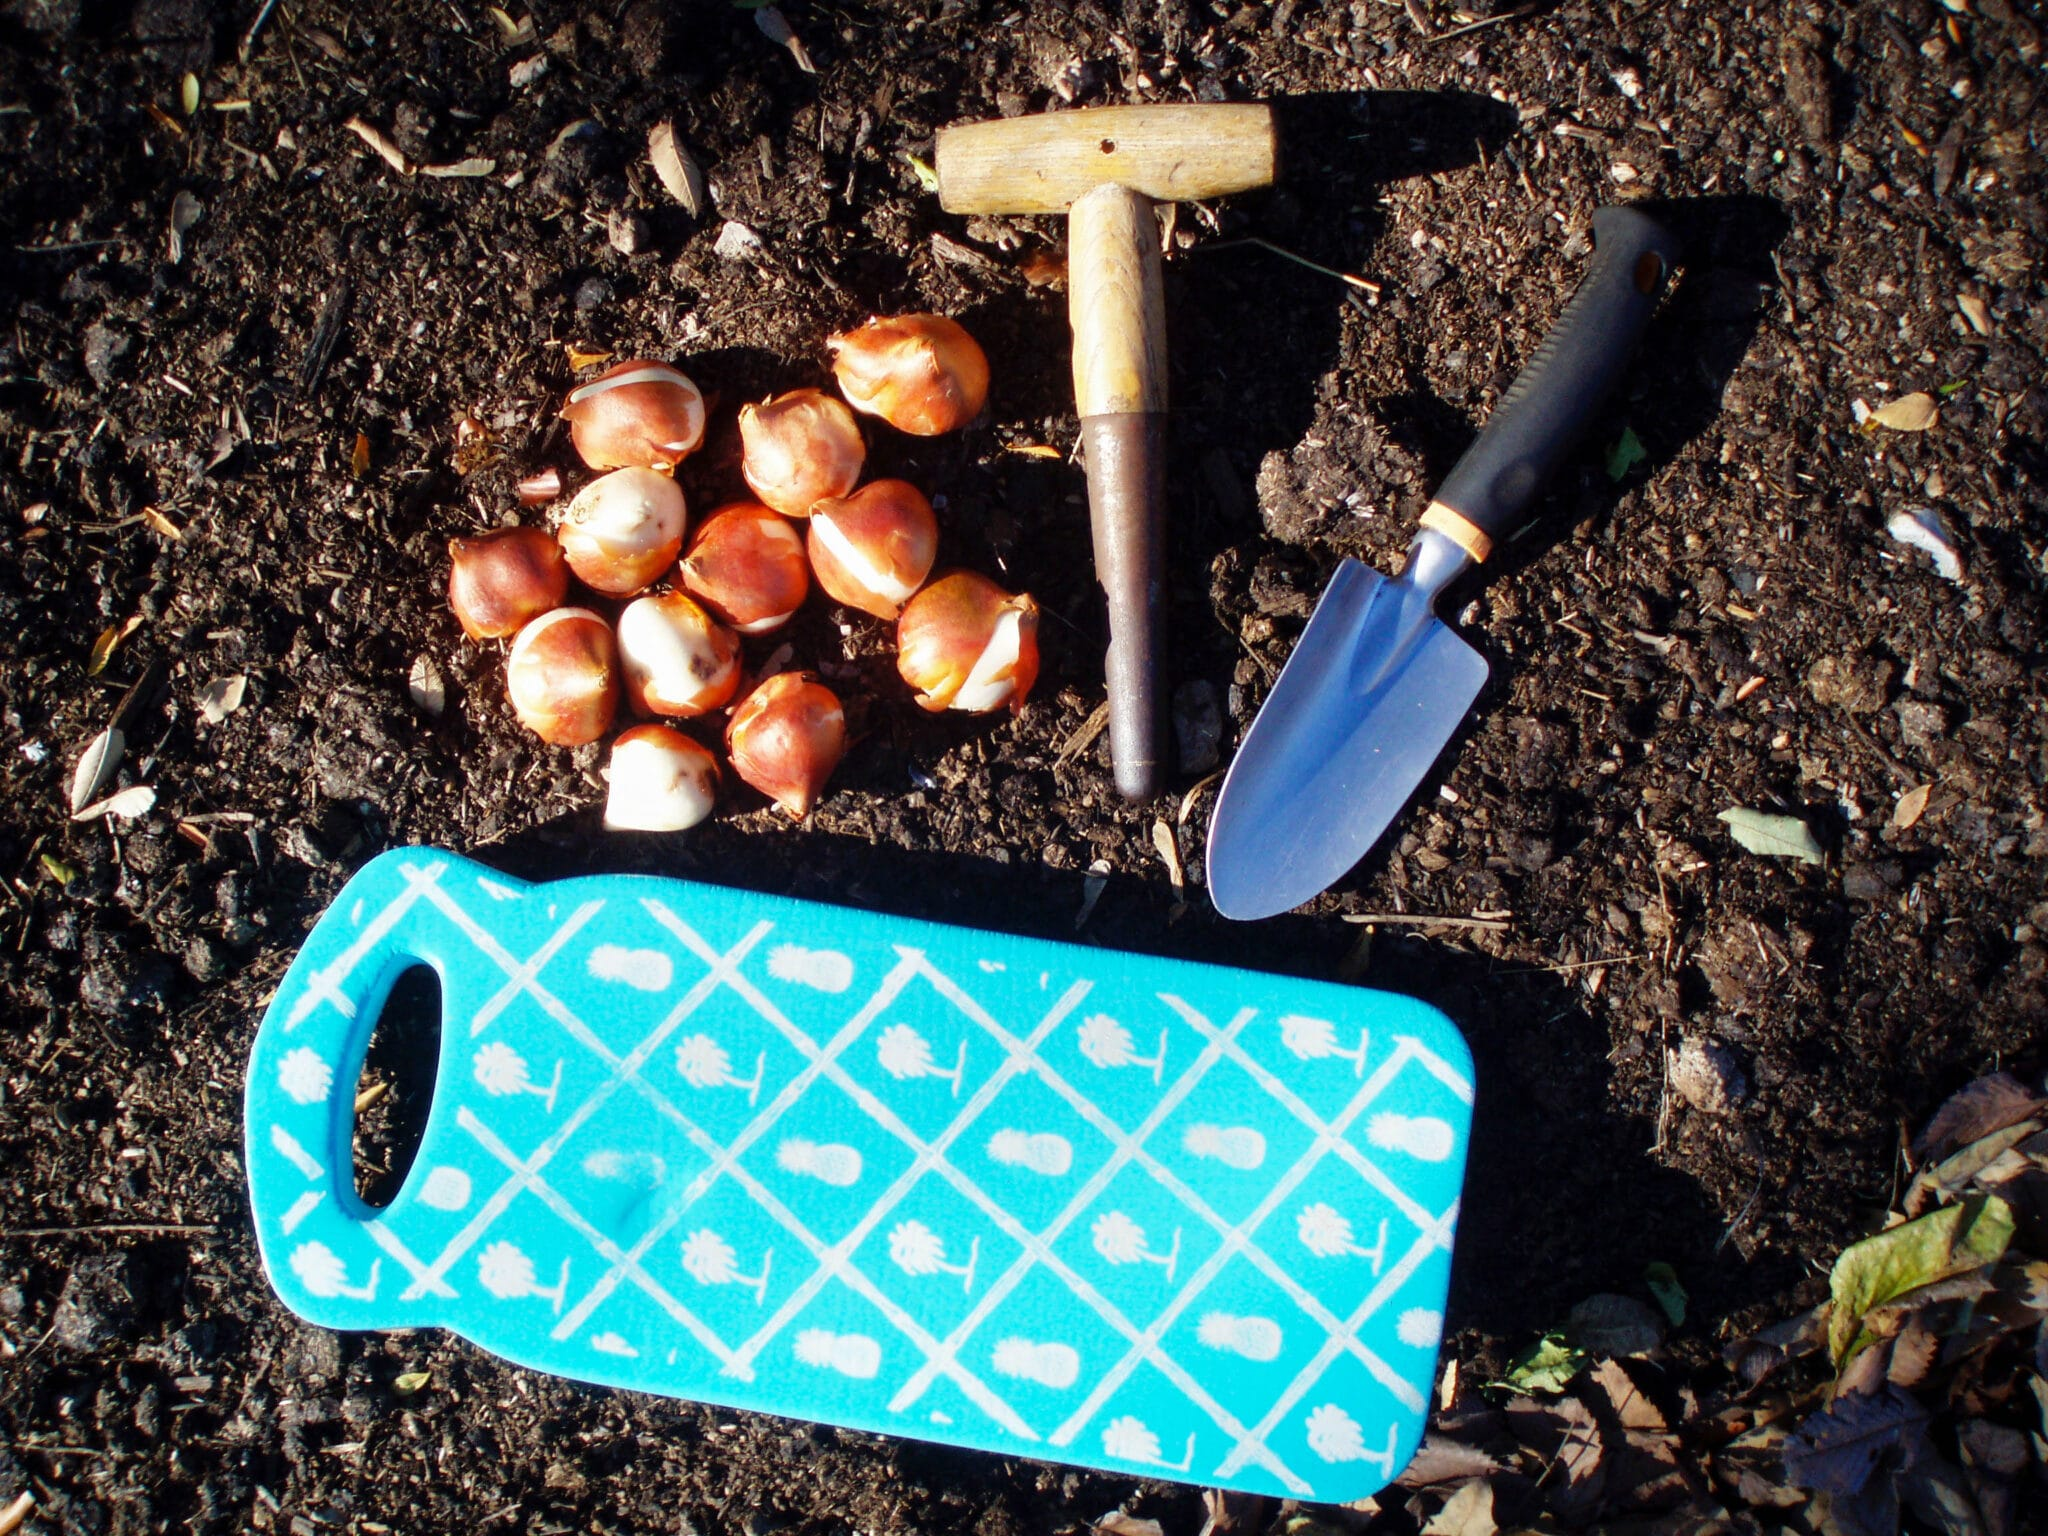 A garden kneeling pad next to other gardening tools.